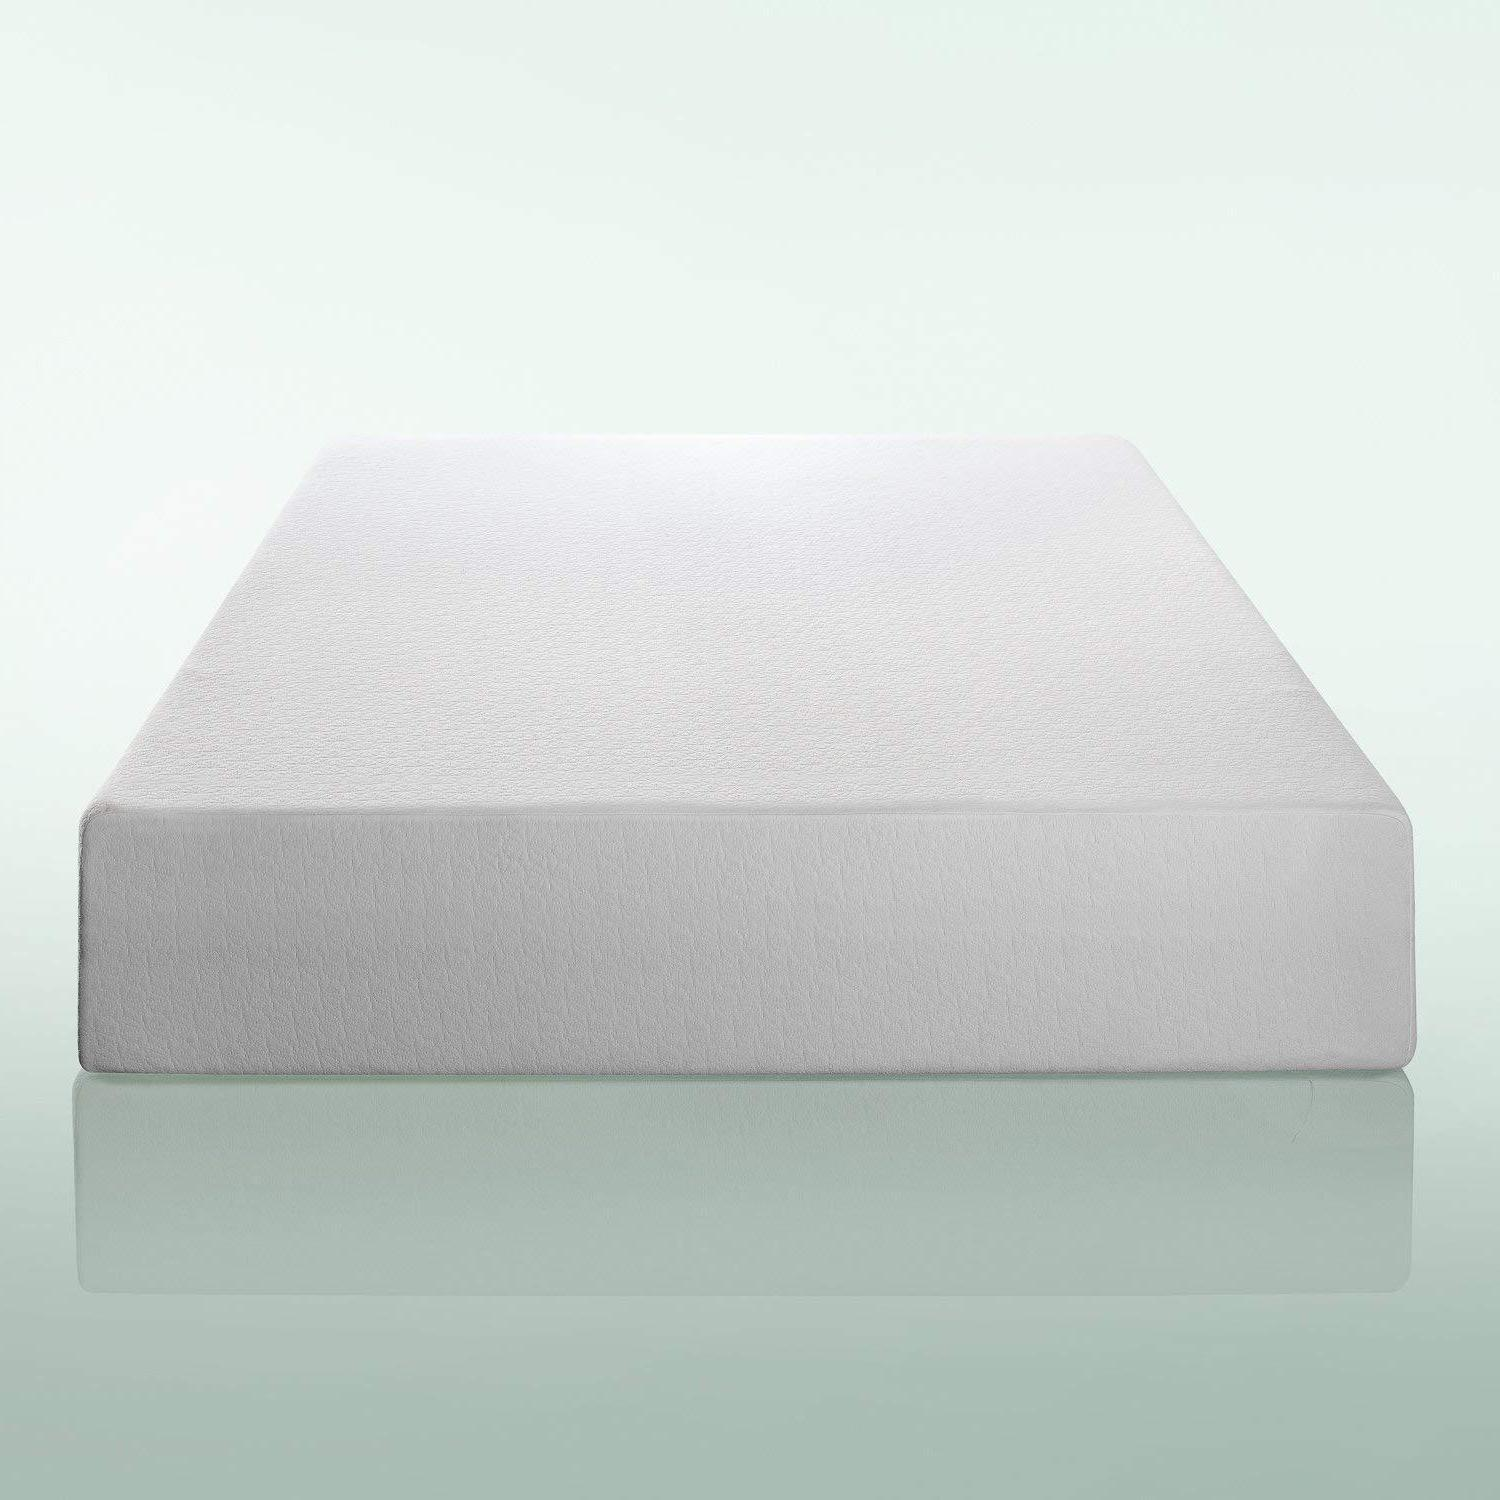 Zinus Memory Foam Full